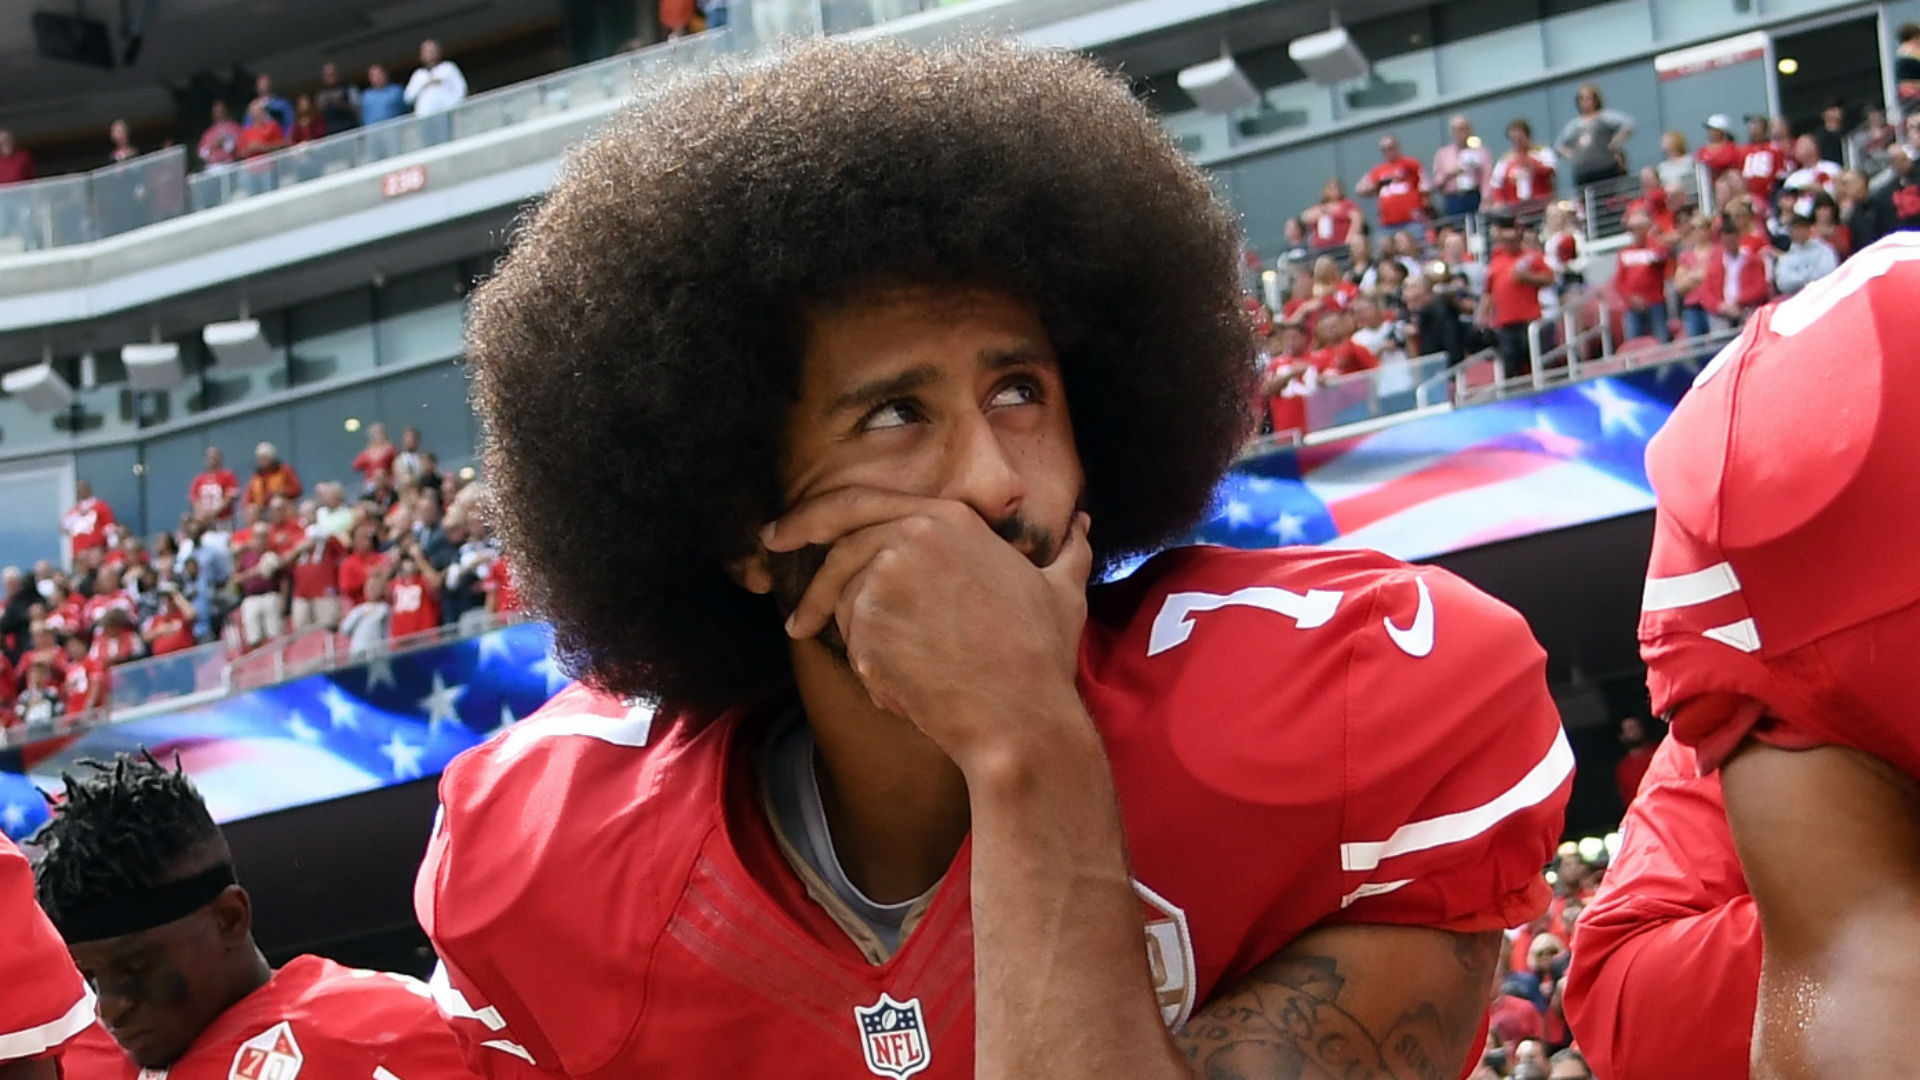 Colin Kaepernick kneeling timeline: How protests during the national anthem started a movement in the NFL 1